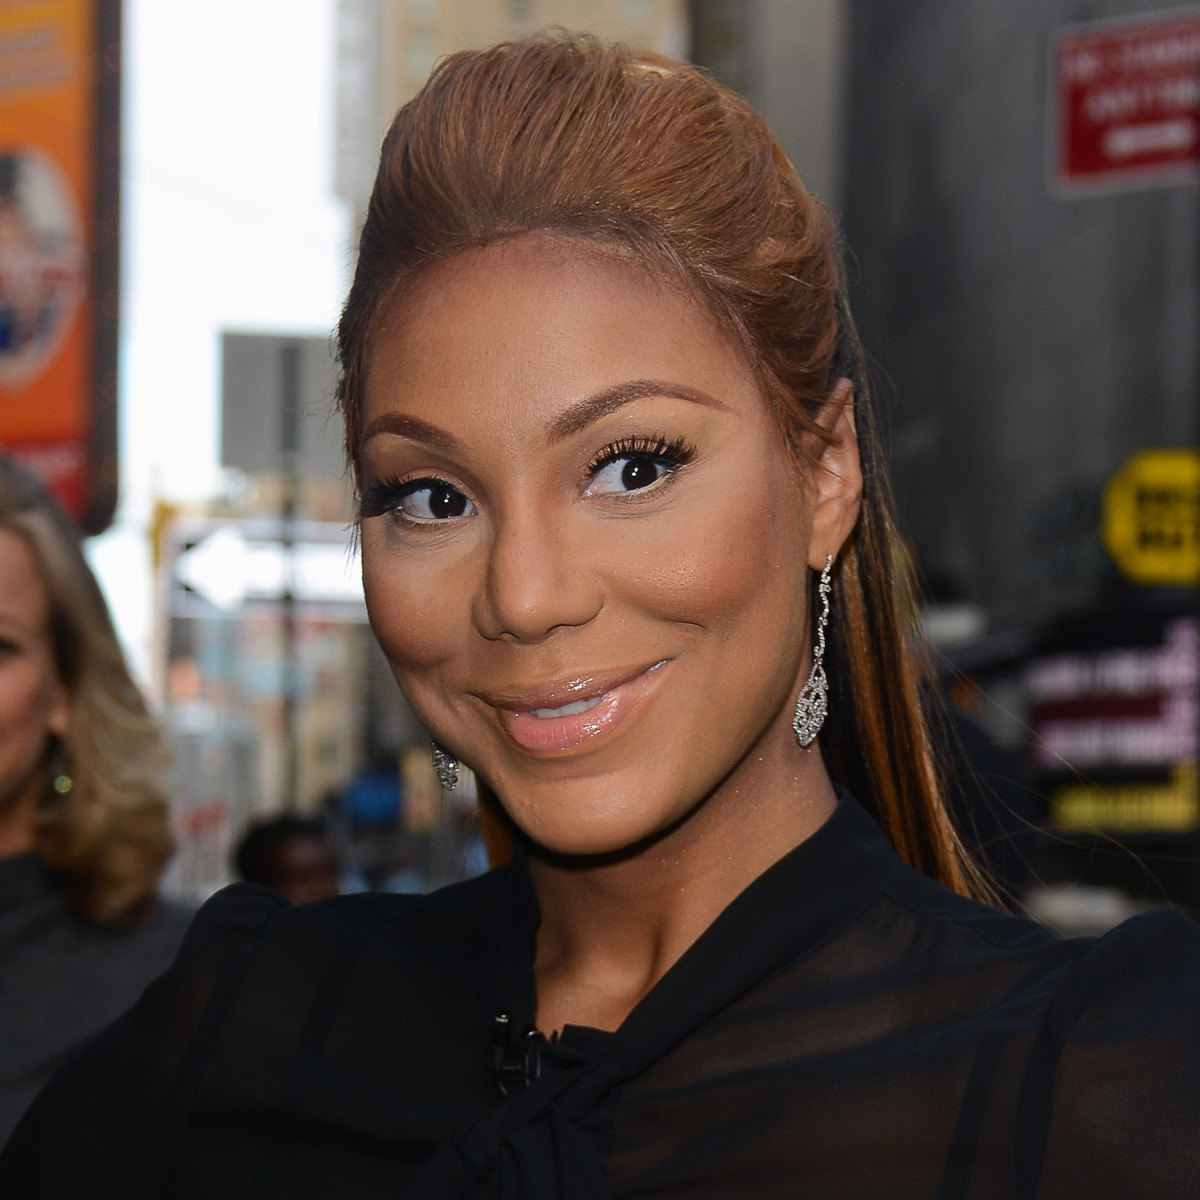 """tamar-braxton-shares-new-photos-with-her-nigerian-boyfriend-on-a-boat-and-fans-are-happy-for-her-let-this-lady-enjoy-her-king-in-peace"""